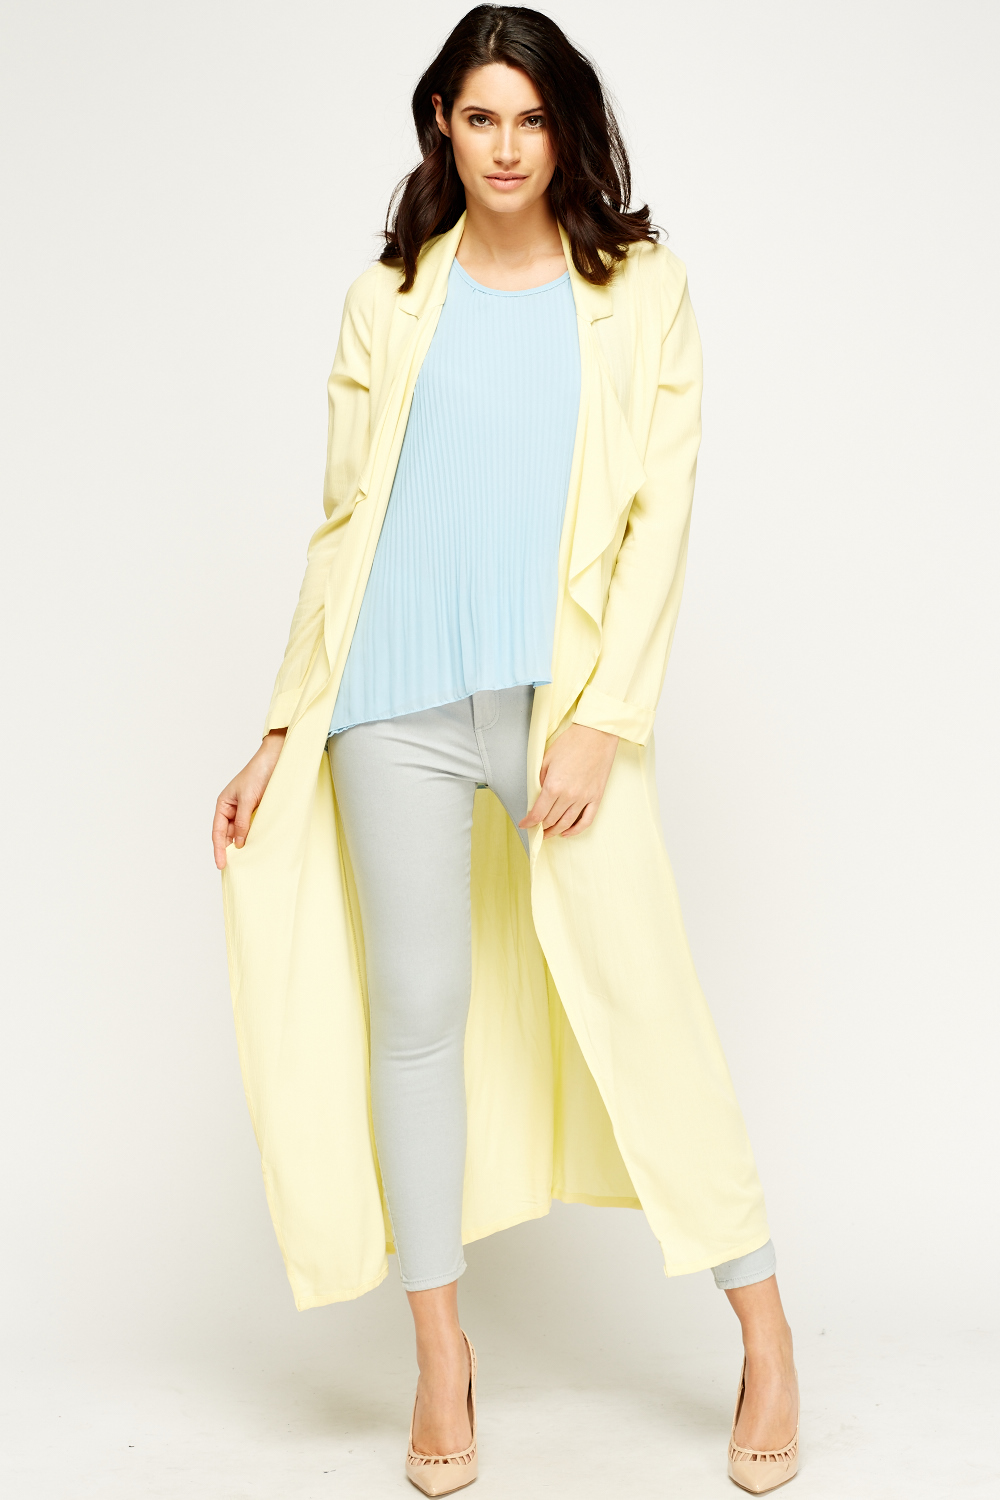 Flare Off White Long Cardigan - Just £5